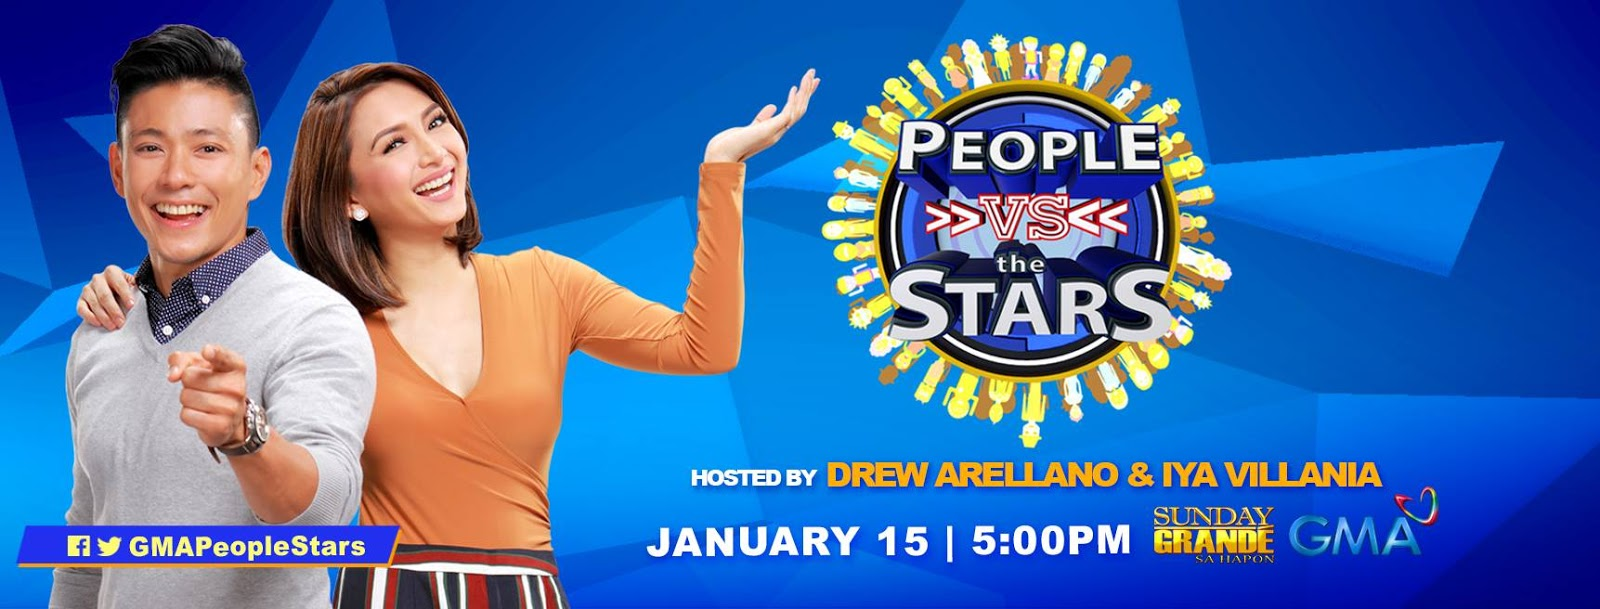 People VS. The Stars February 19 2017